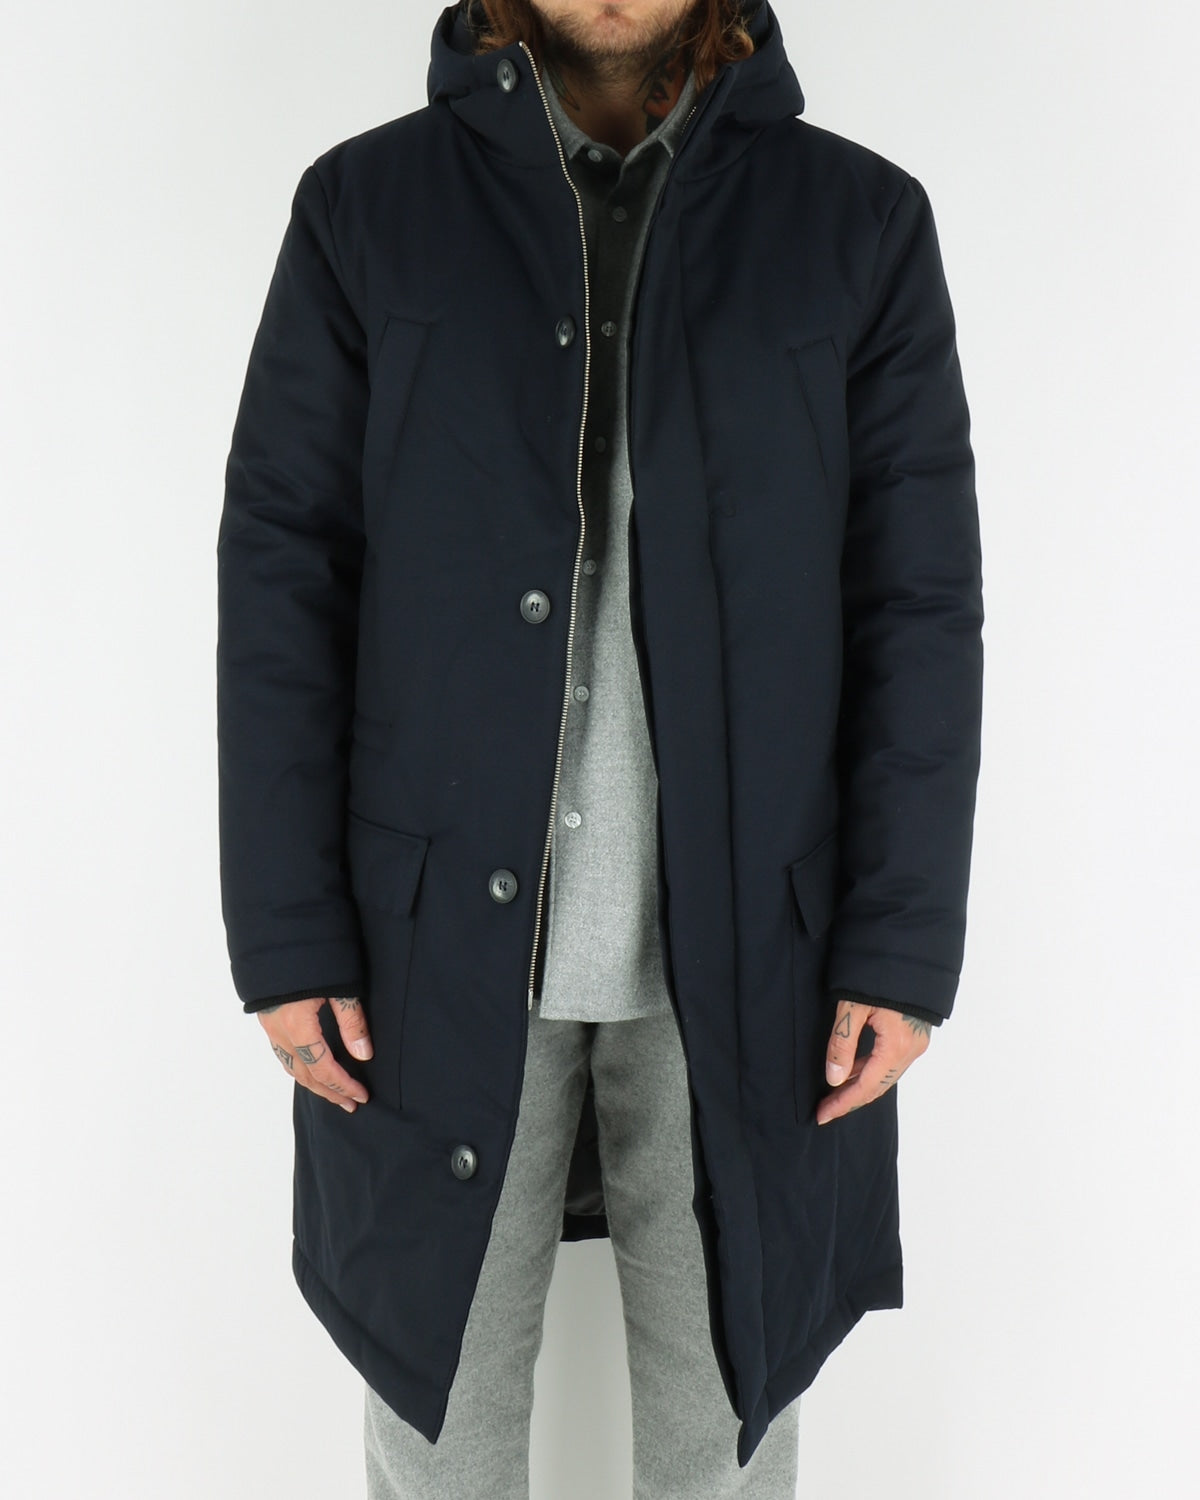 journal clothing_million coat_navy_view_3_5